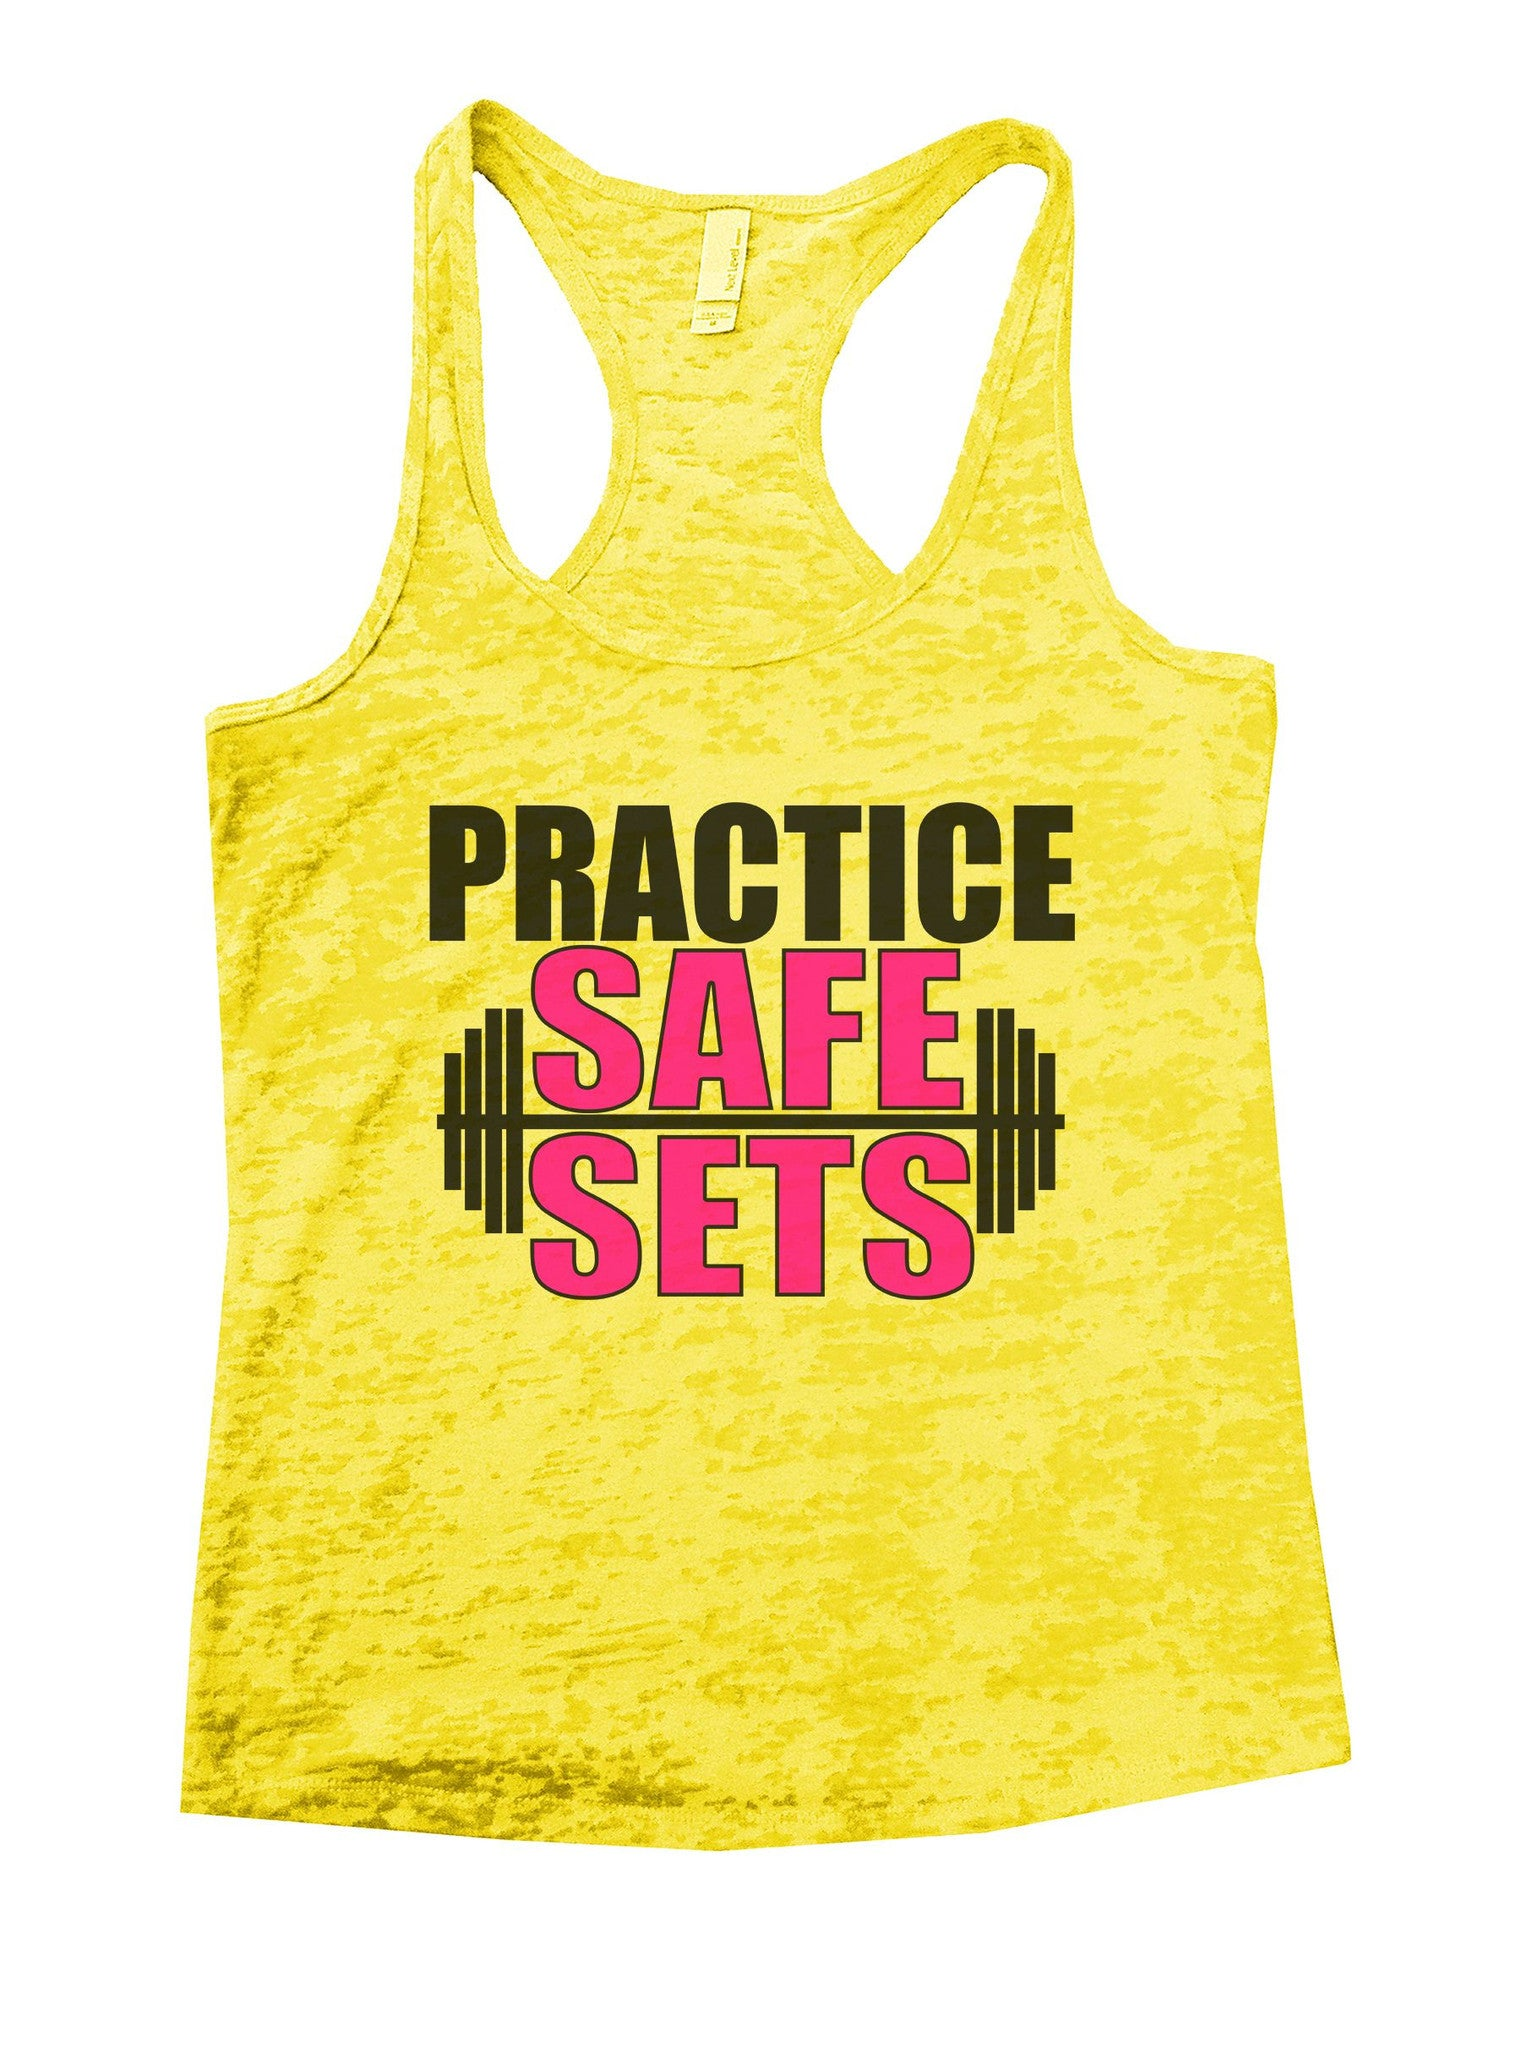 Practice Safe Sets Burnout Tank Top By BurnoutTankTops.com - 1124 - Funny Shirts Tank Tops Burnouts and Triblends  - 7